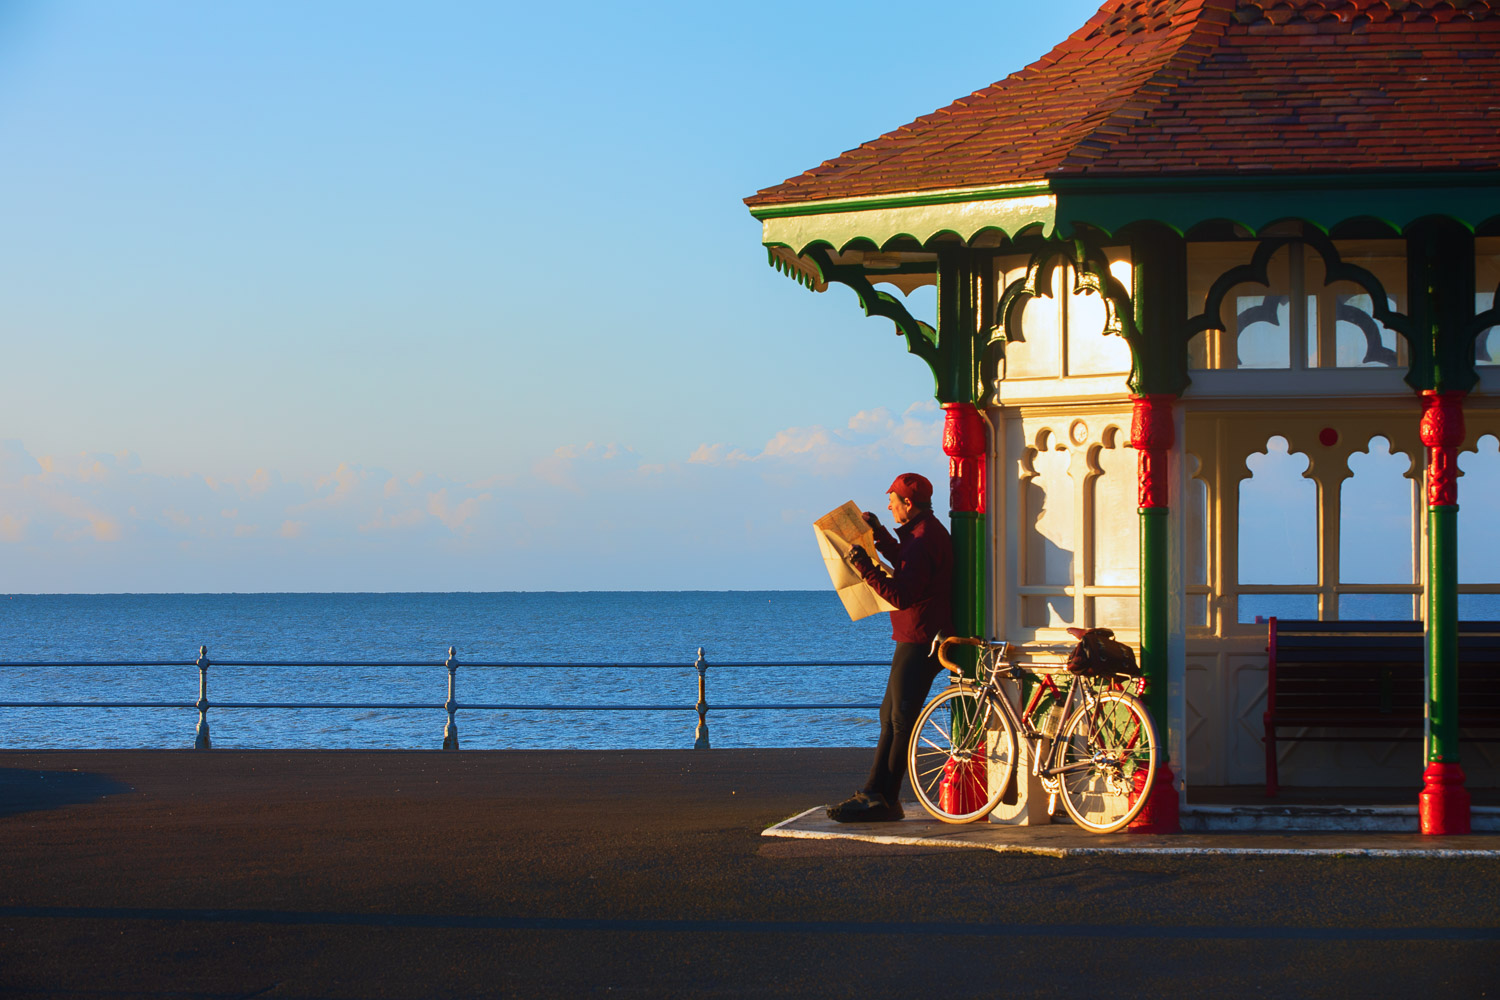 Man with bicycle reading map by ornate shelter on seaside